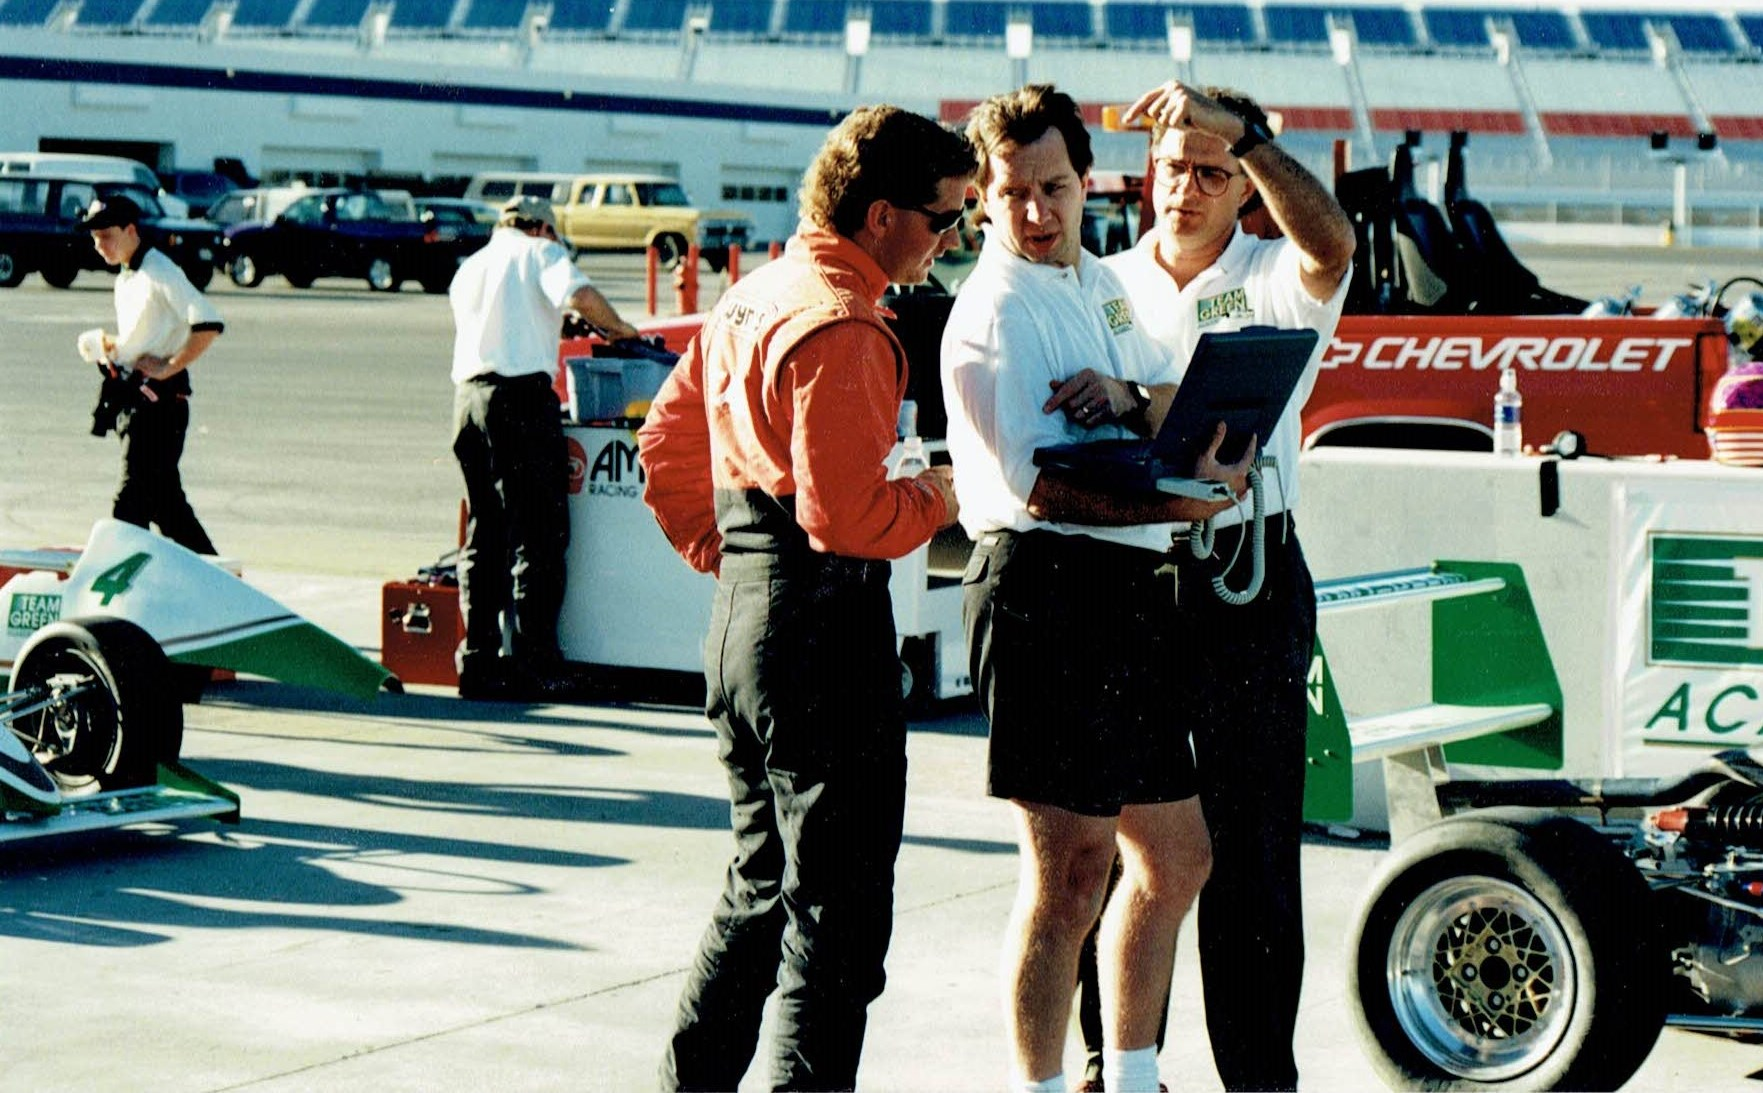 The late Kenny Irwin, myself and Kim Green going over lap data.